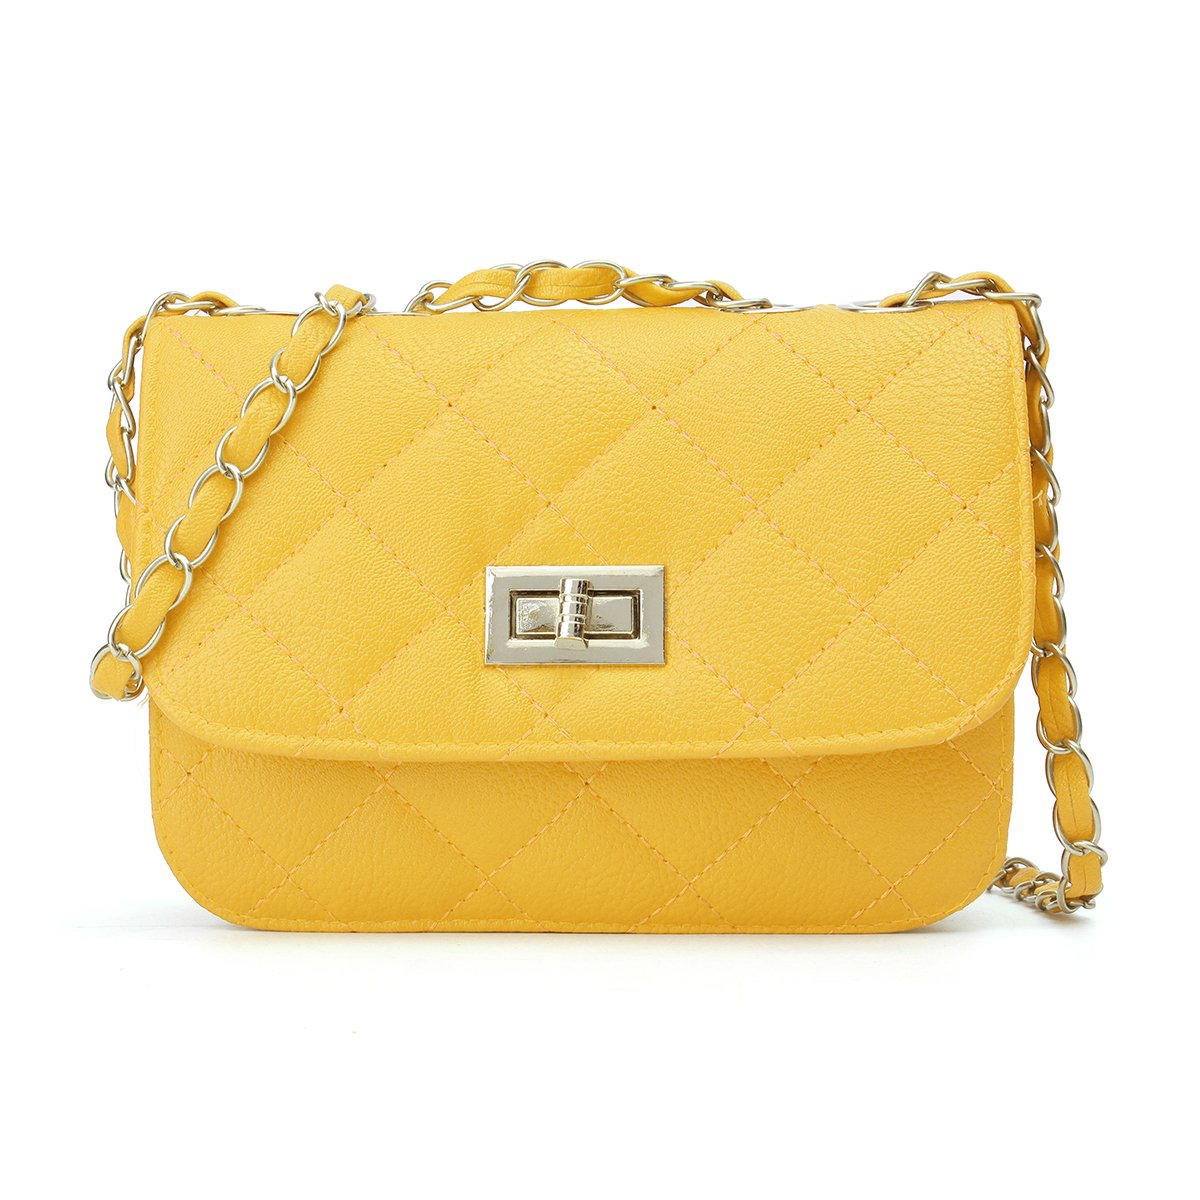 Mini Crossbody Bag, OURBAG PU Leather Quilted Cross Body Shoulder Clutch Purse Evening Handbag with Chain Yellow